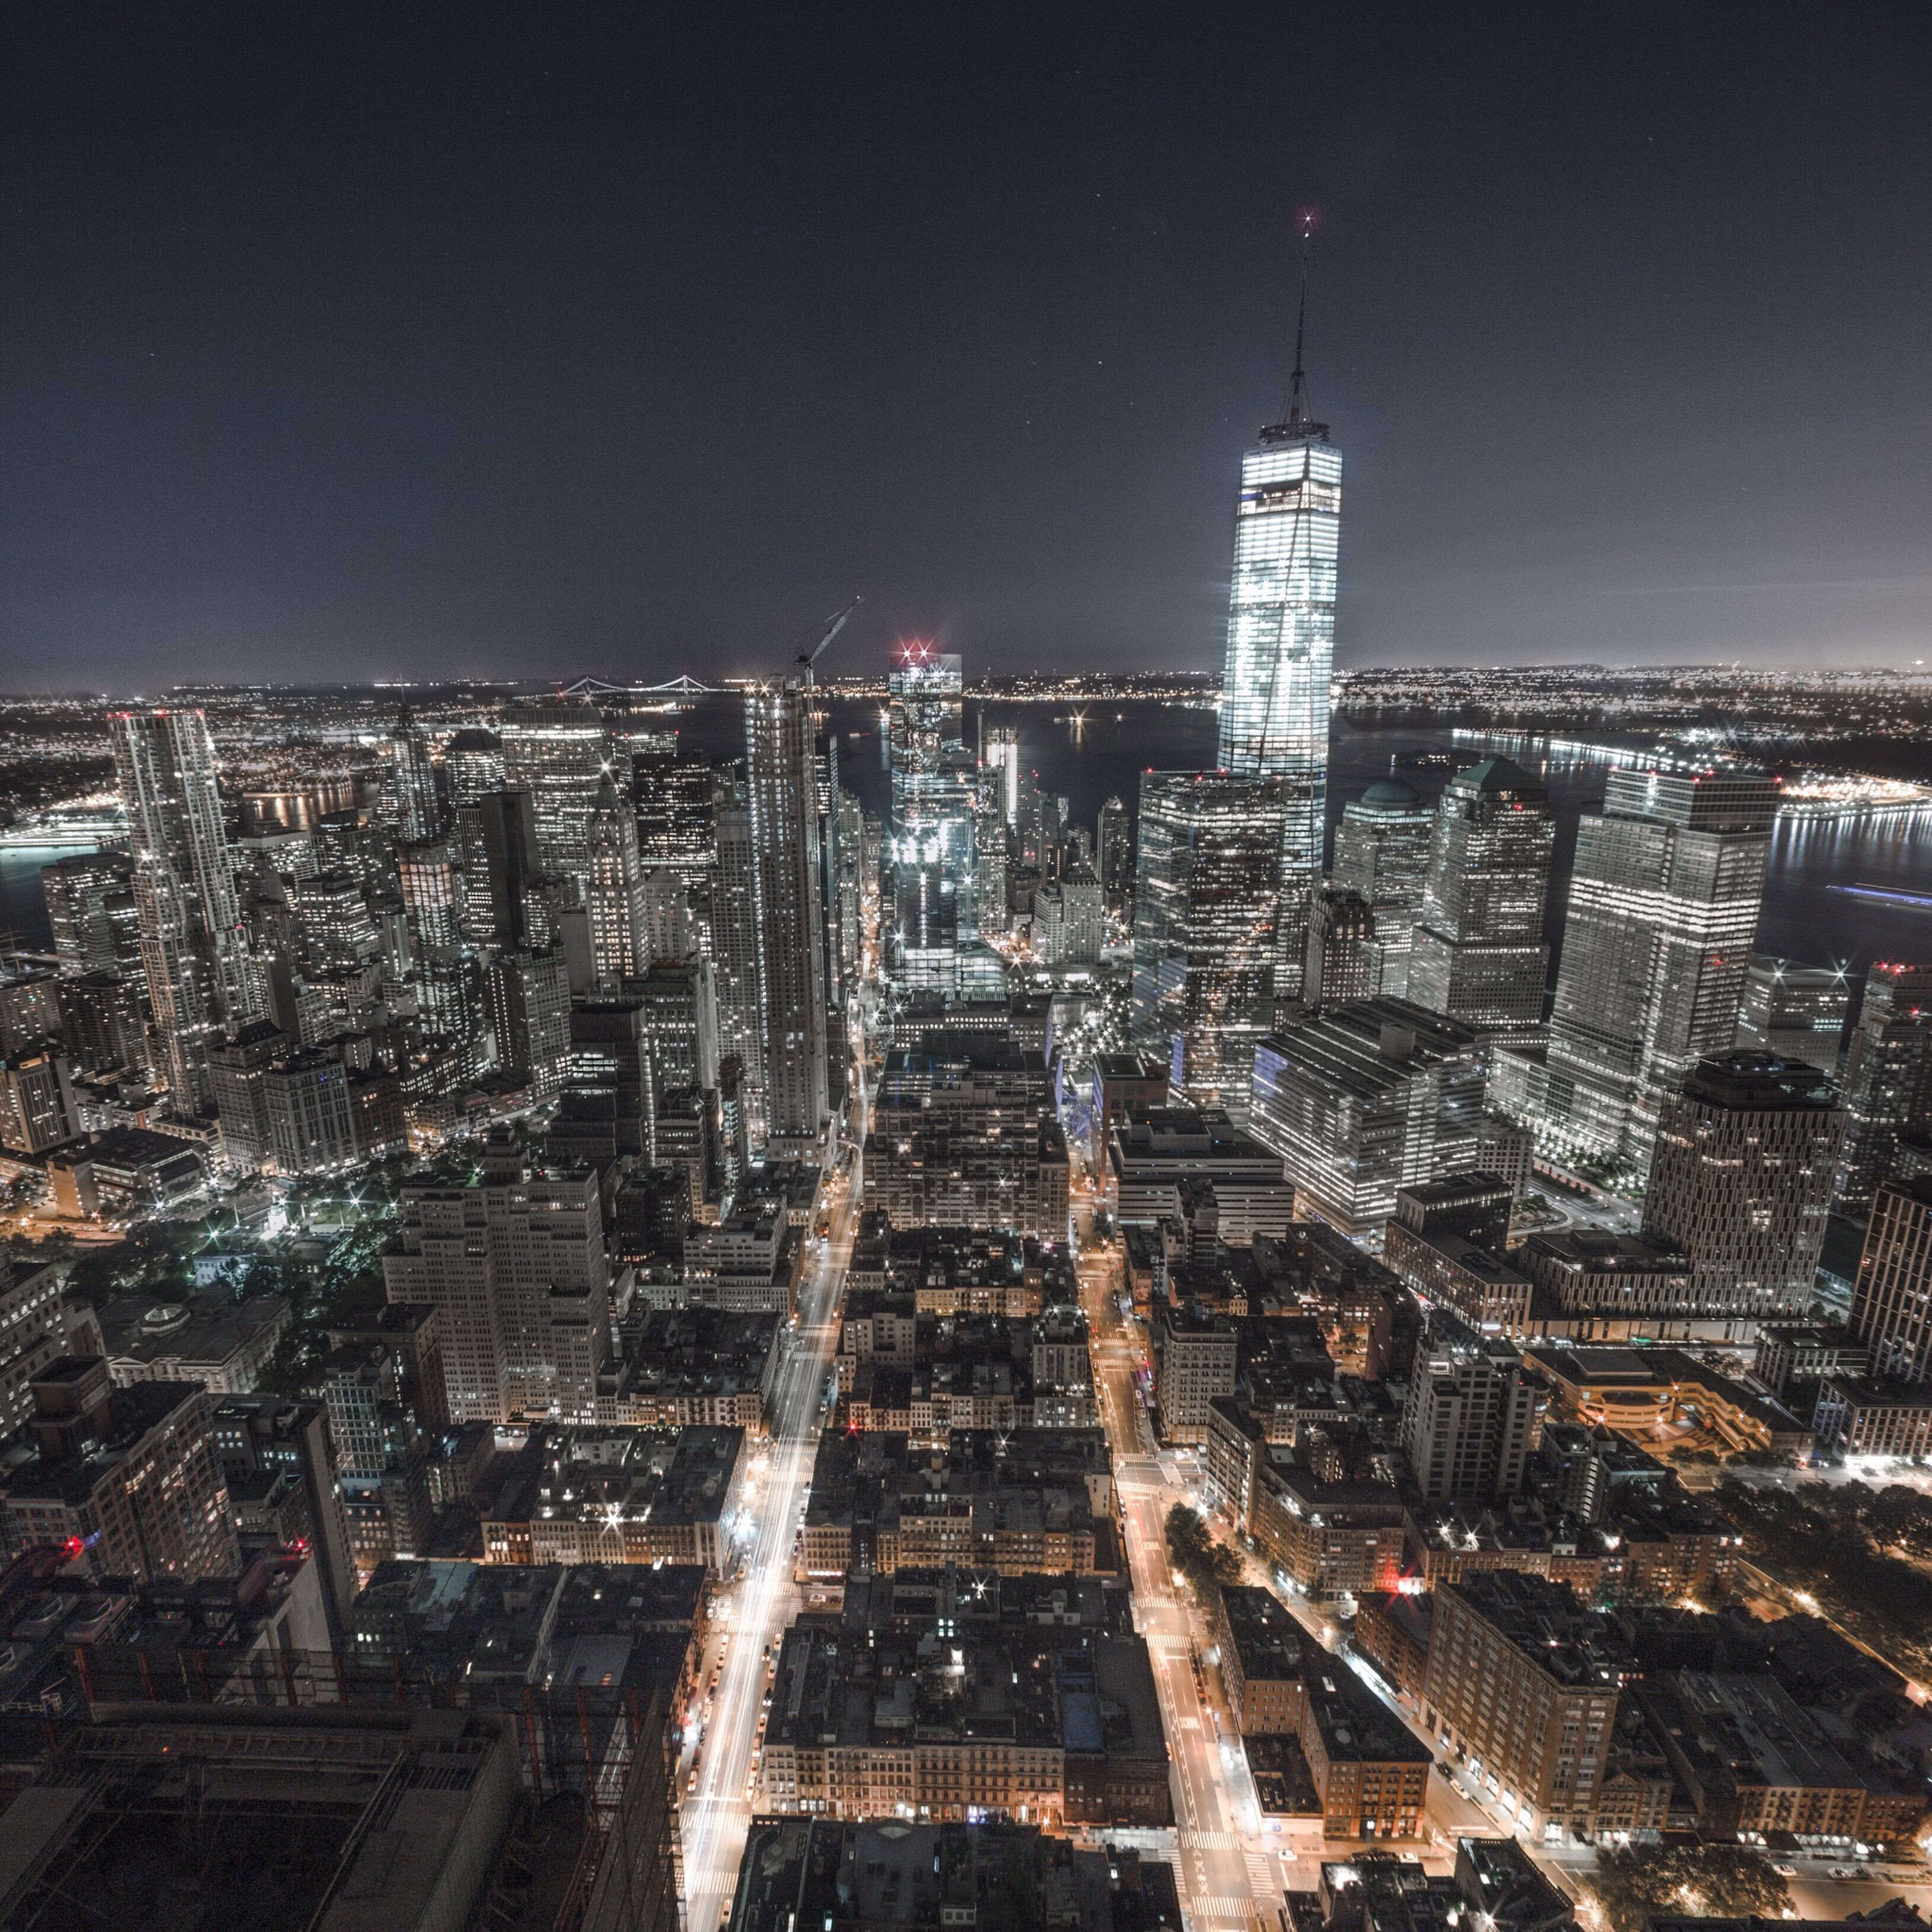 city, architecture, building exterior, cityscape, built structure, illuminated, skyscraper, night, tower, tall - high, crowded, modern, high angle view, office building, capital cities, financial district, city life, travel destinations, urban skyline, sky